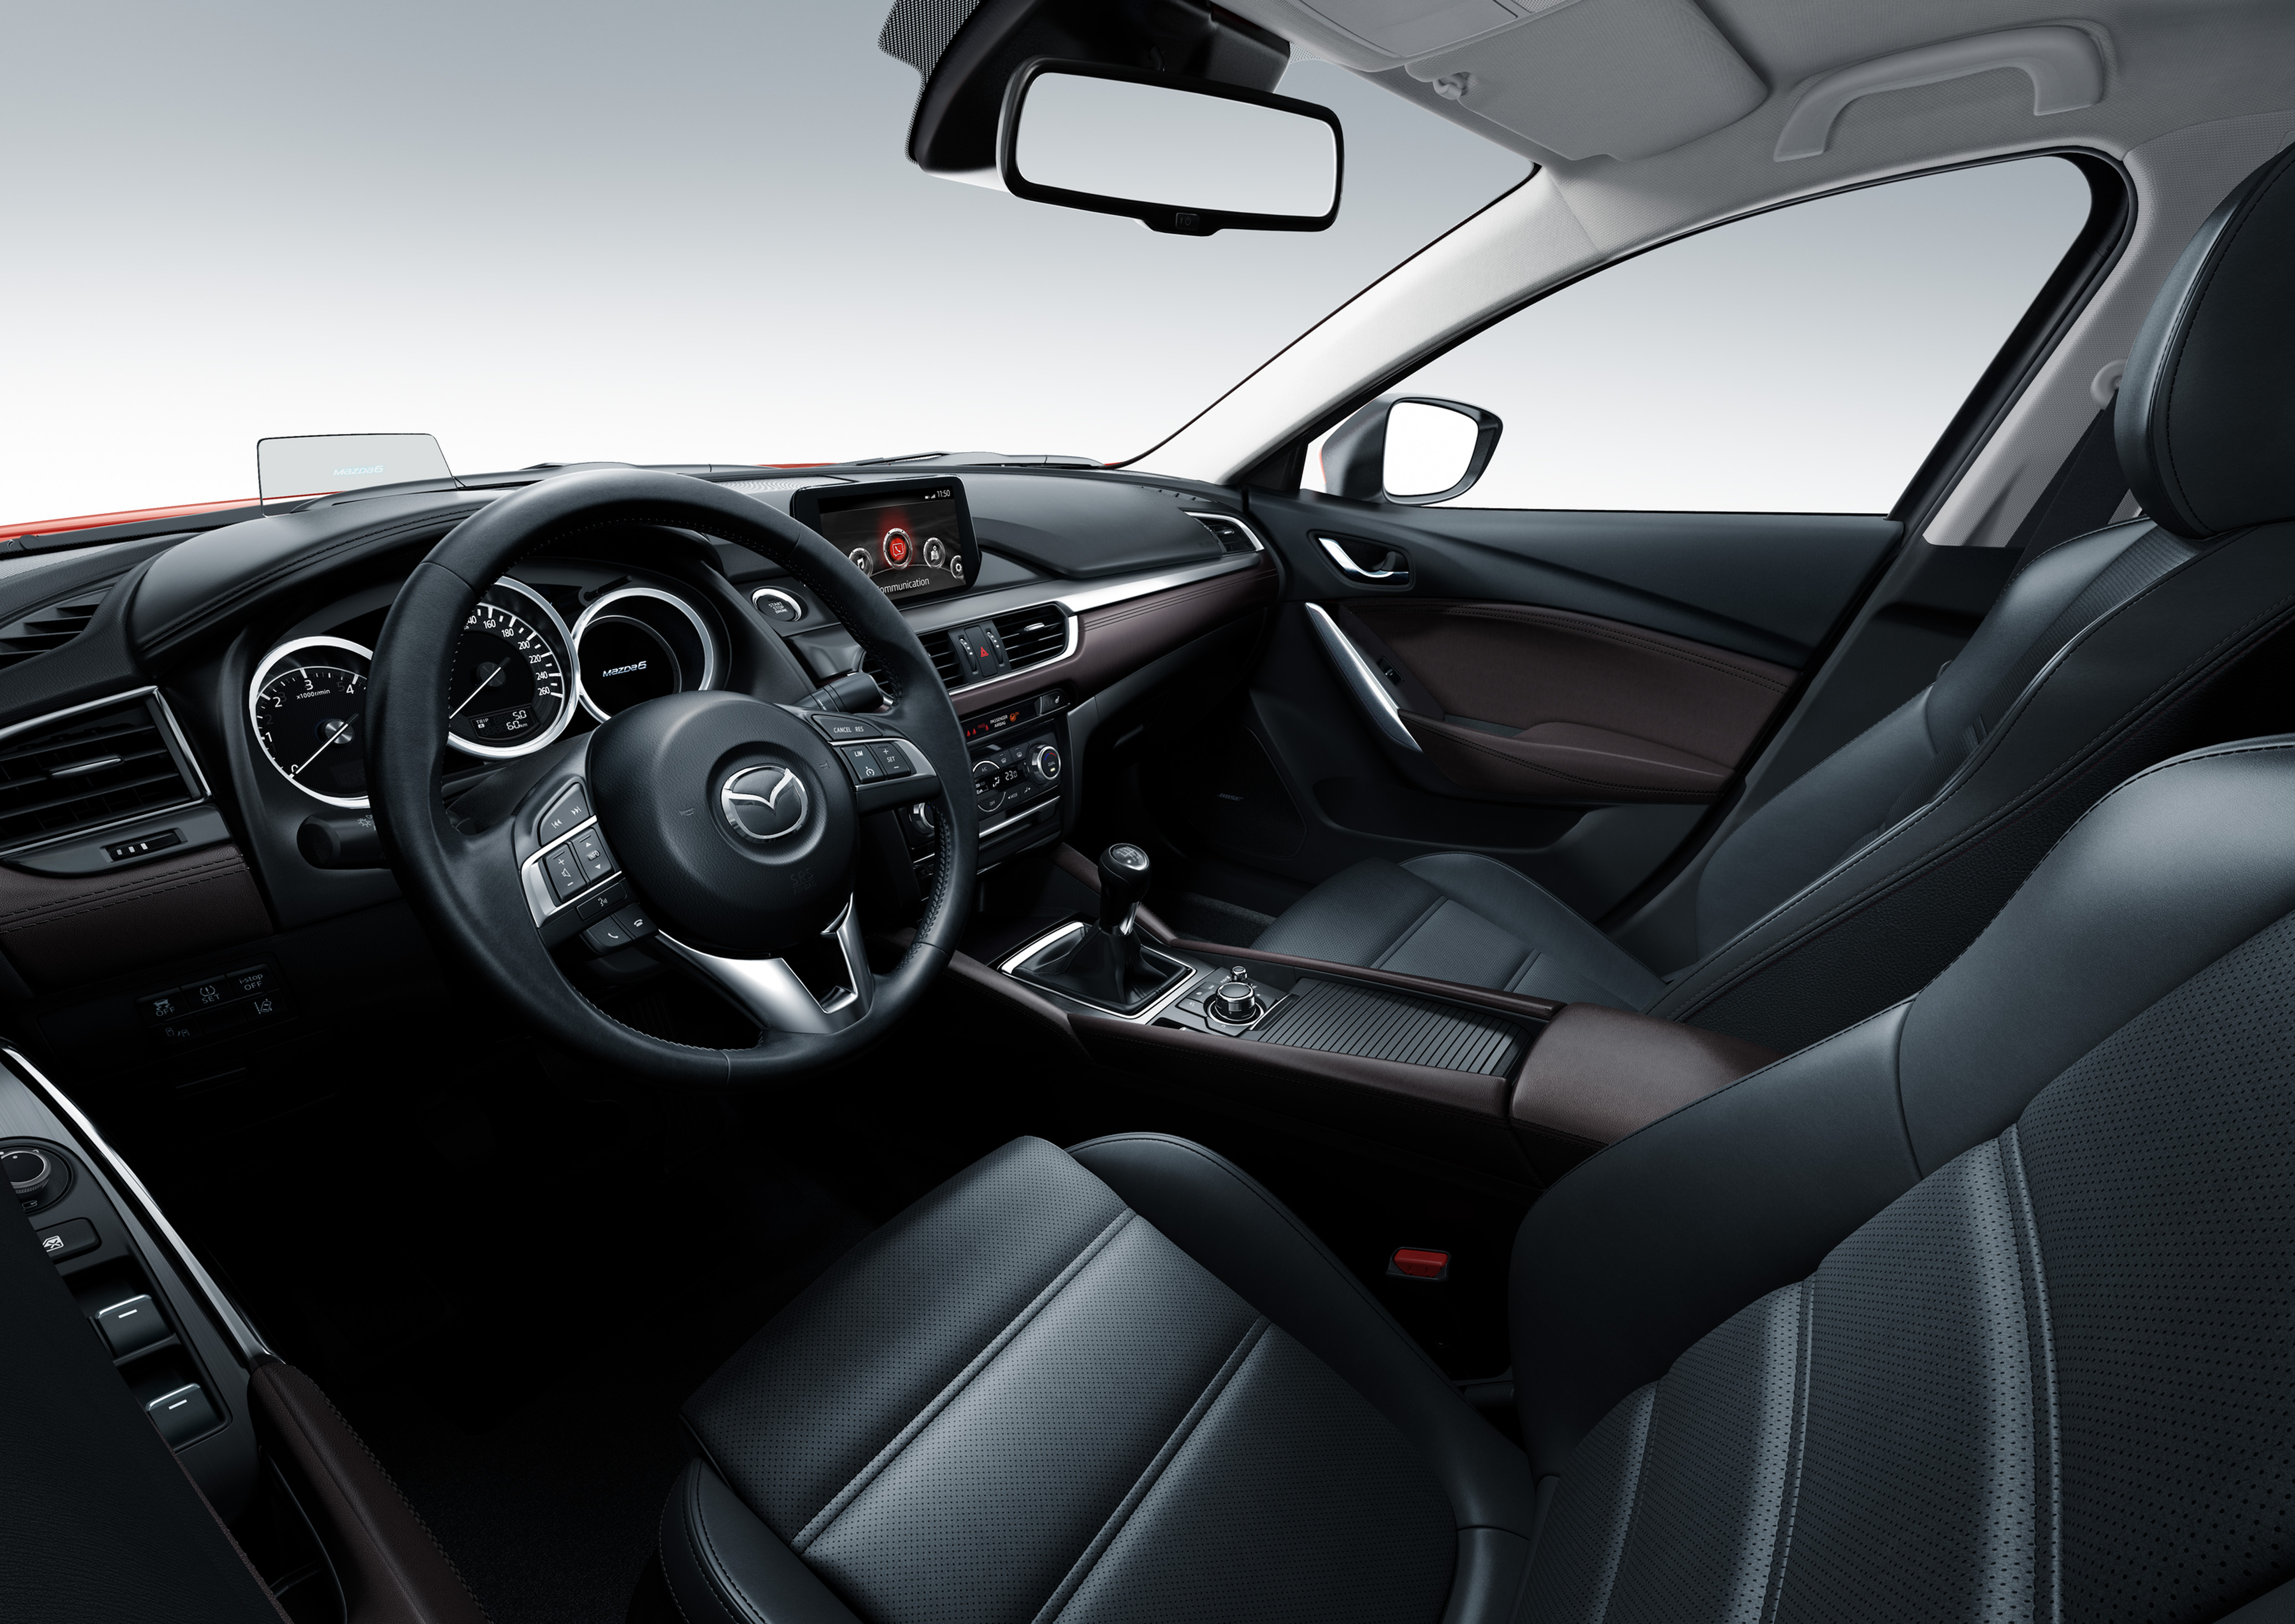 Mazda 6 Facelift Unveiled At The 2014 La Motor Show Image